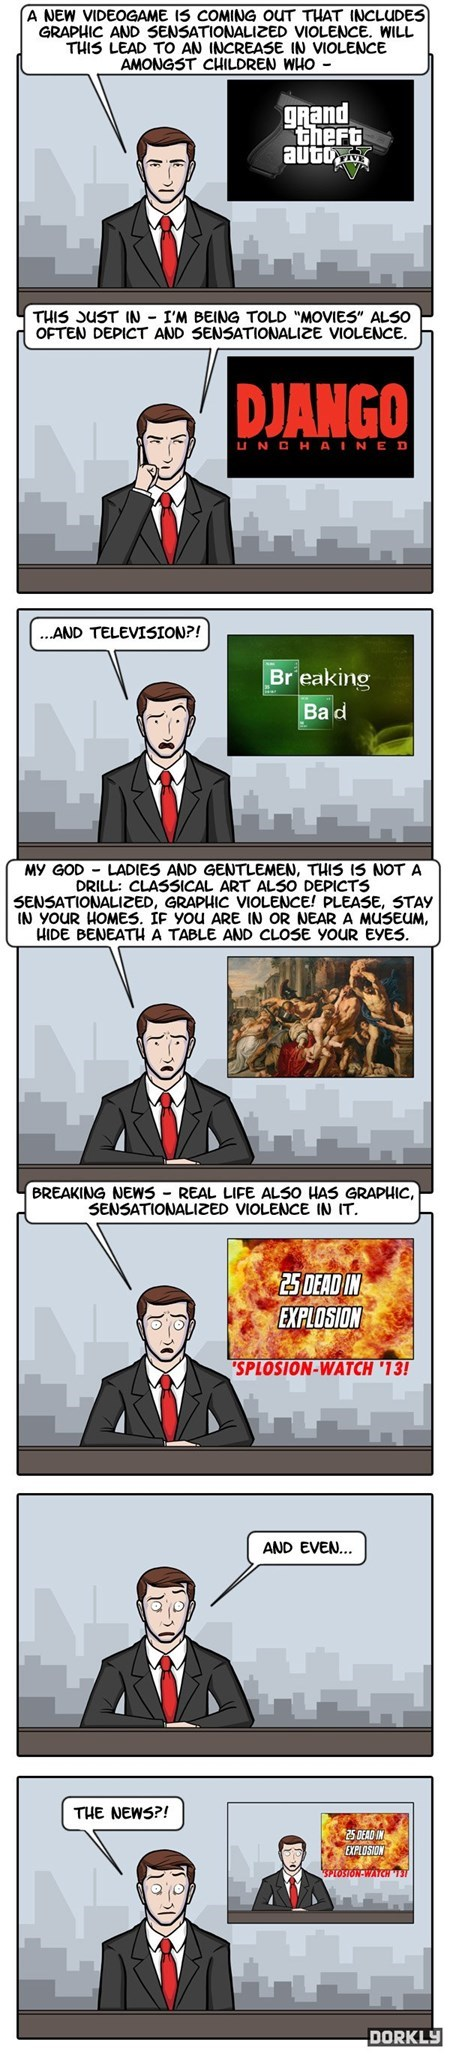 news Videogames violences funny web comics